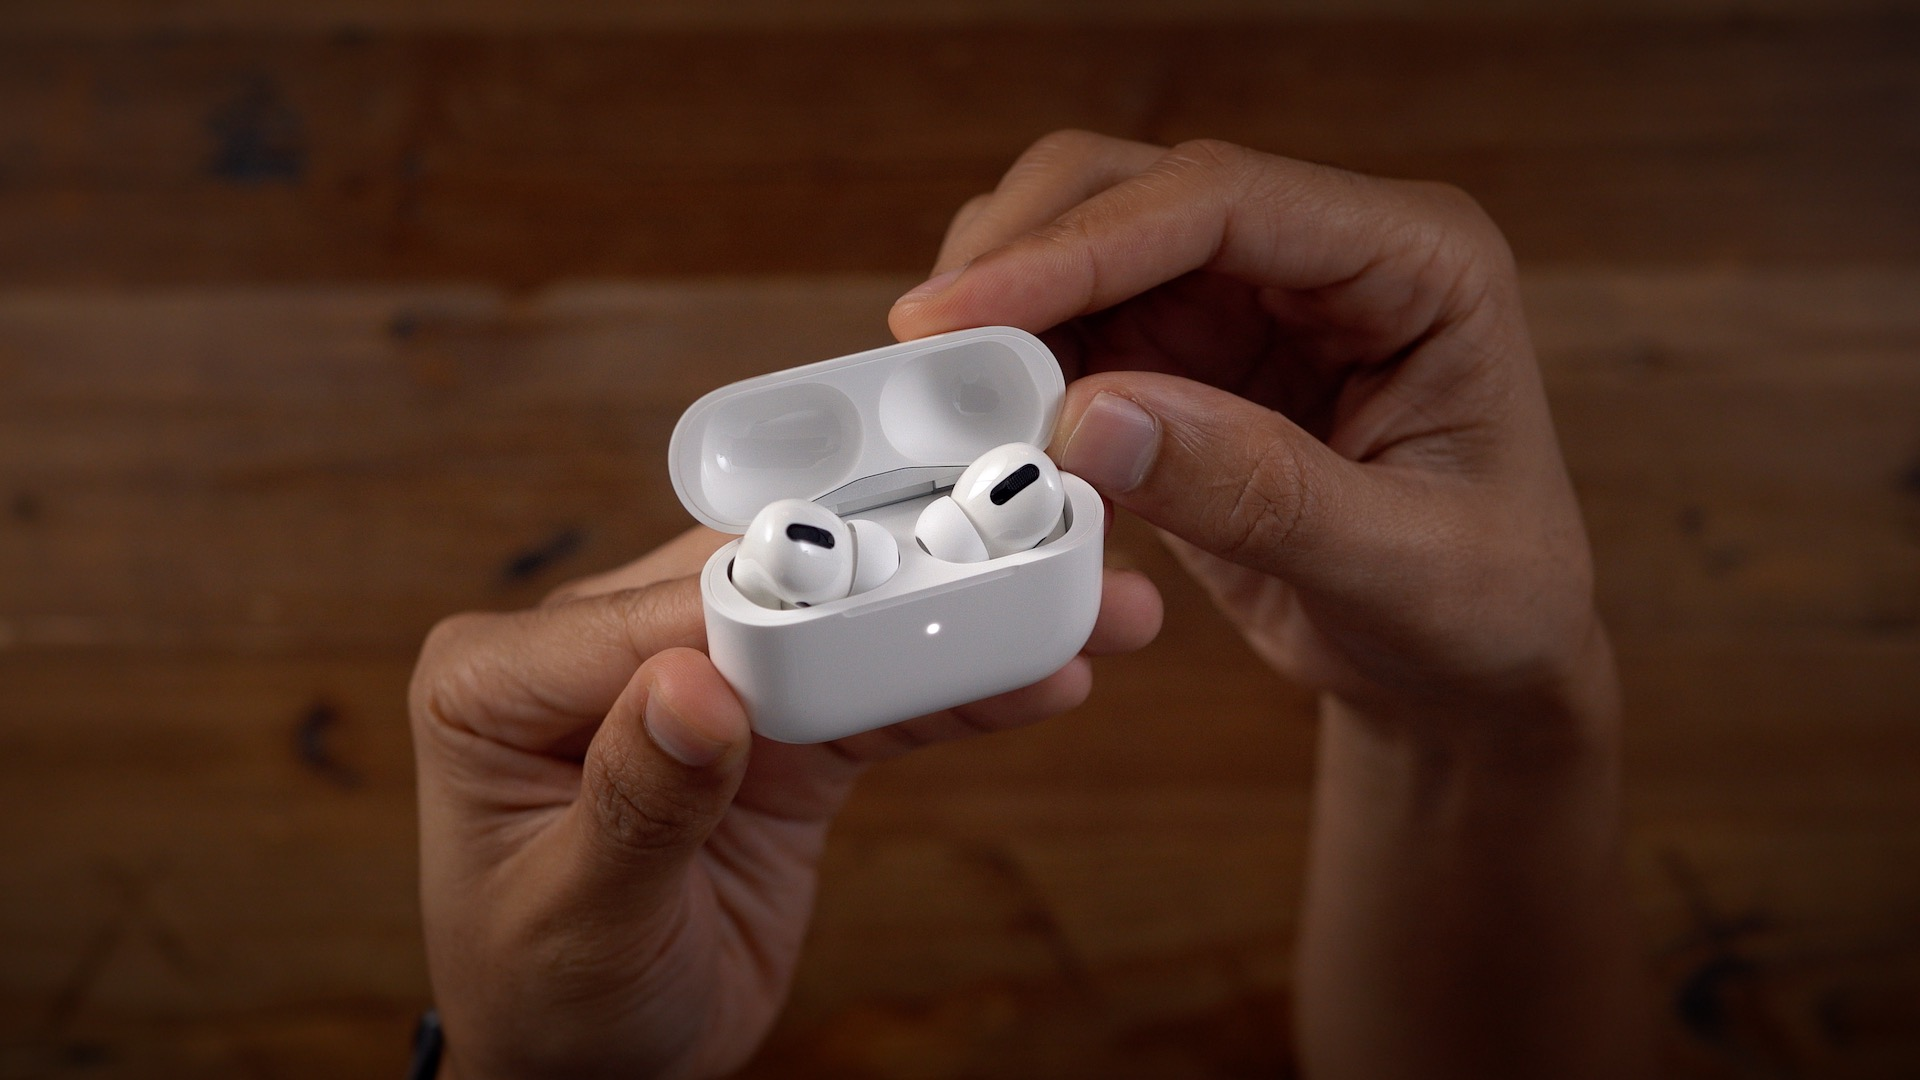 Consumer Reports: AirPods Pro pack 'significant' sound quality upgrades, but Galaxy Buds still best